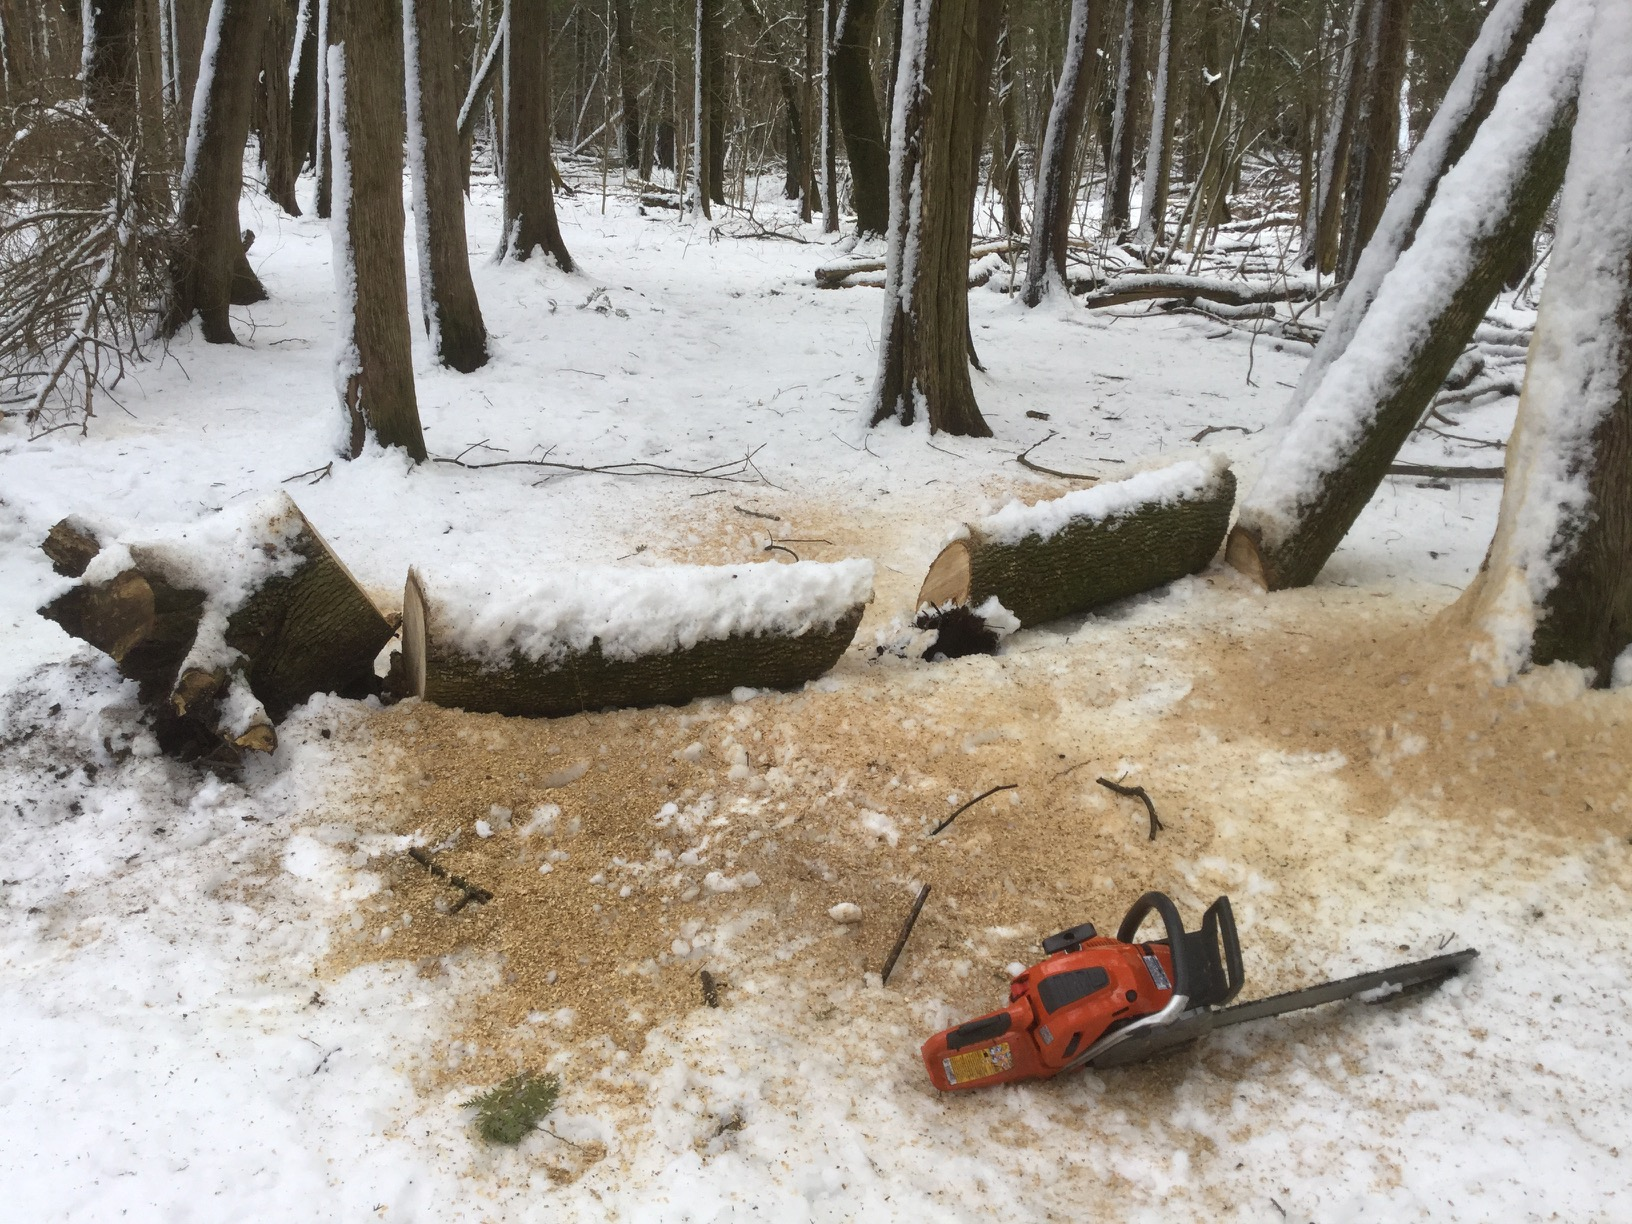 fallen tree across snowy trail sawn into sections, chainsaw in foreground